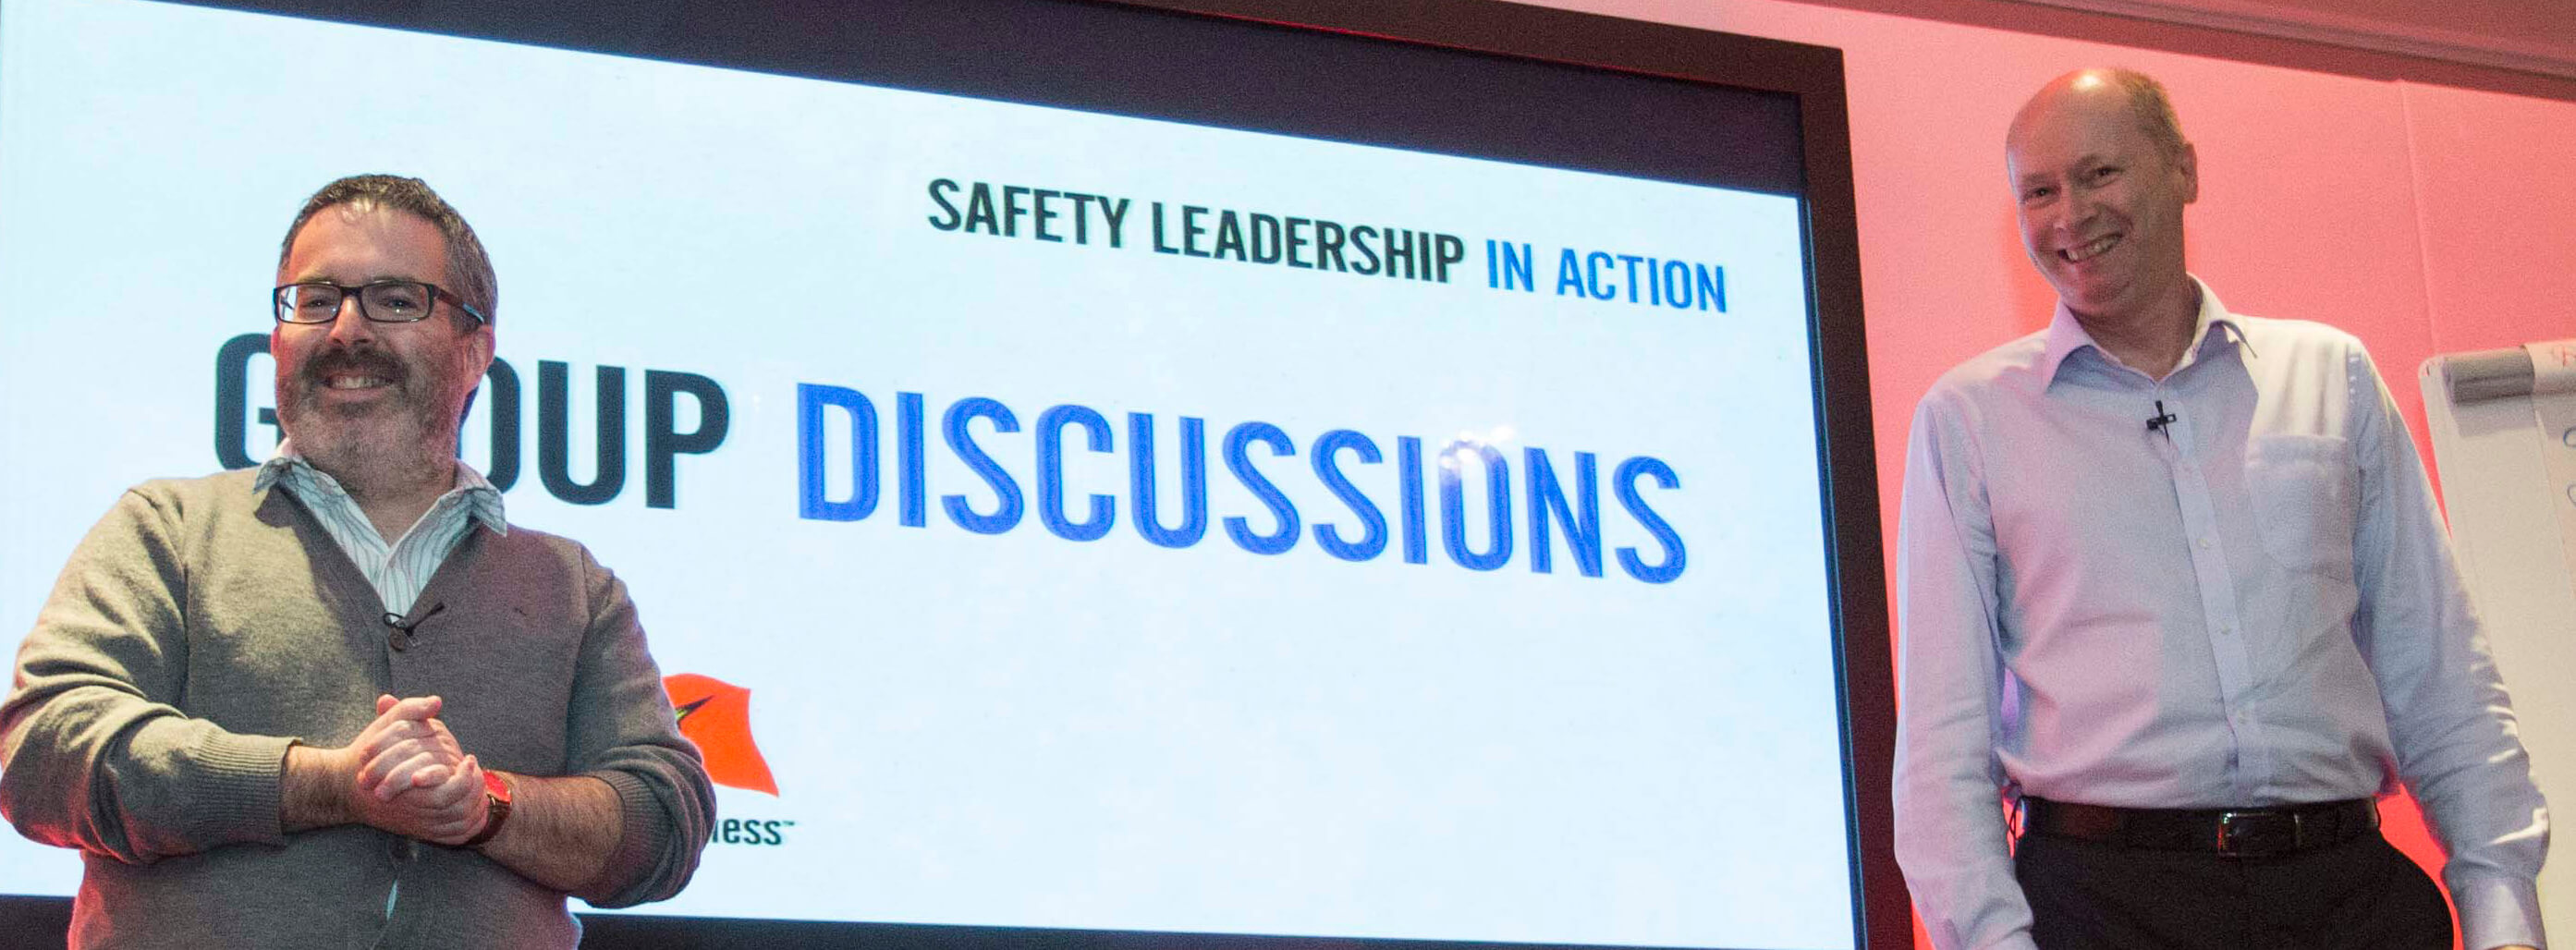 Safety leadership is a behaviour not a position